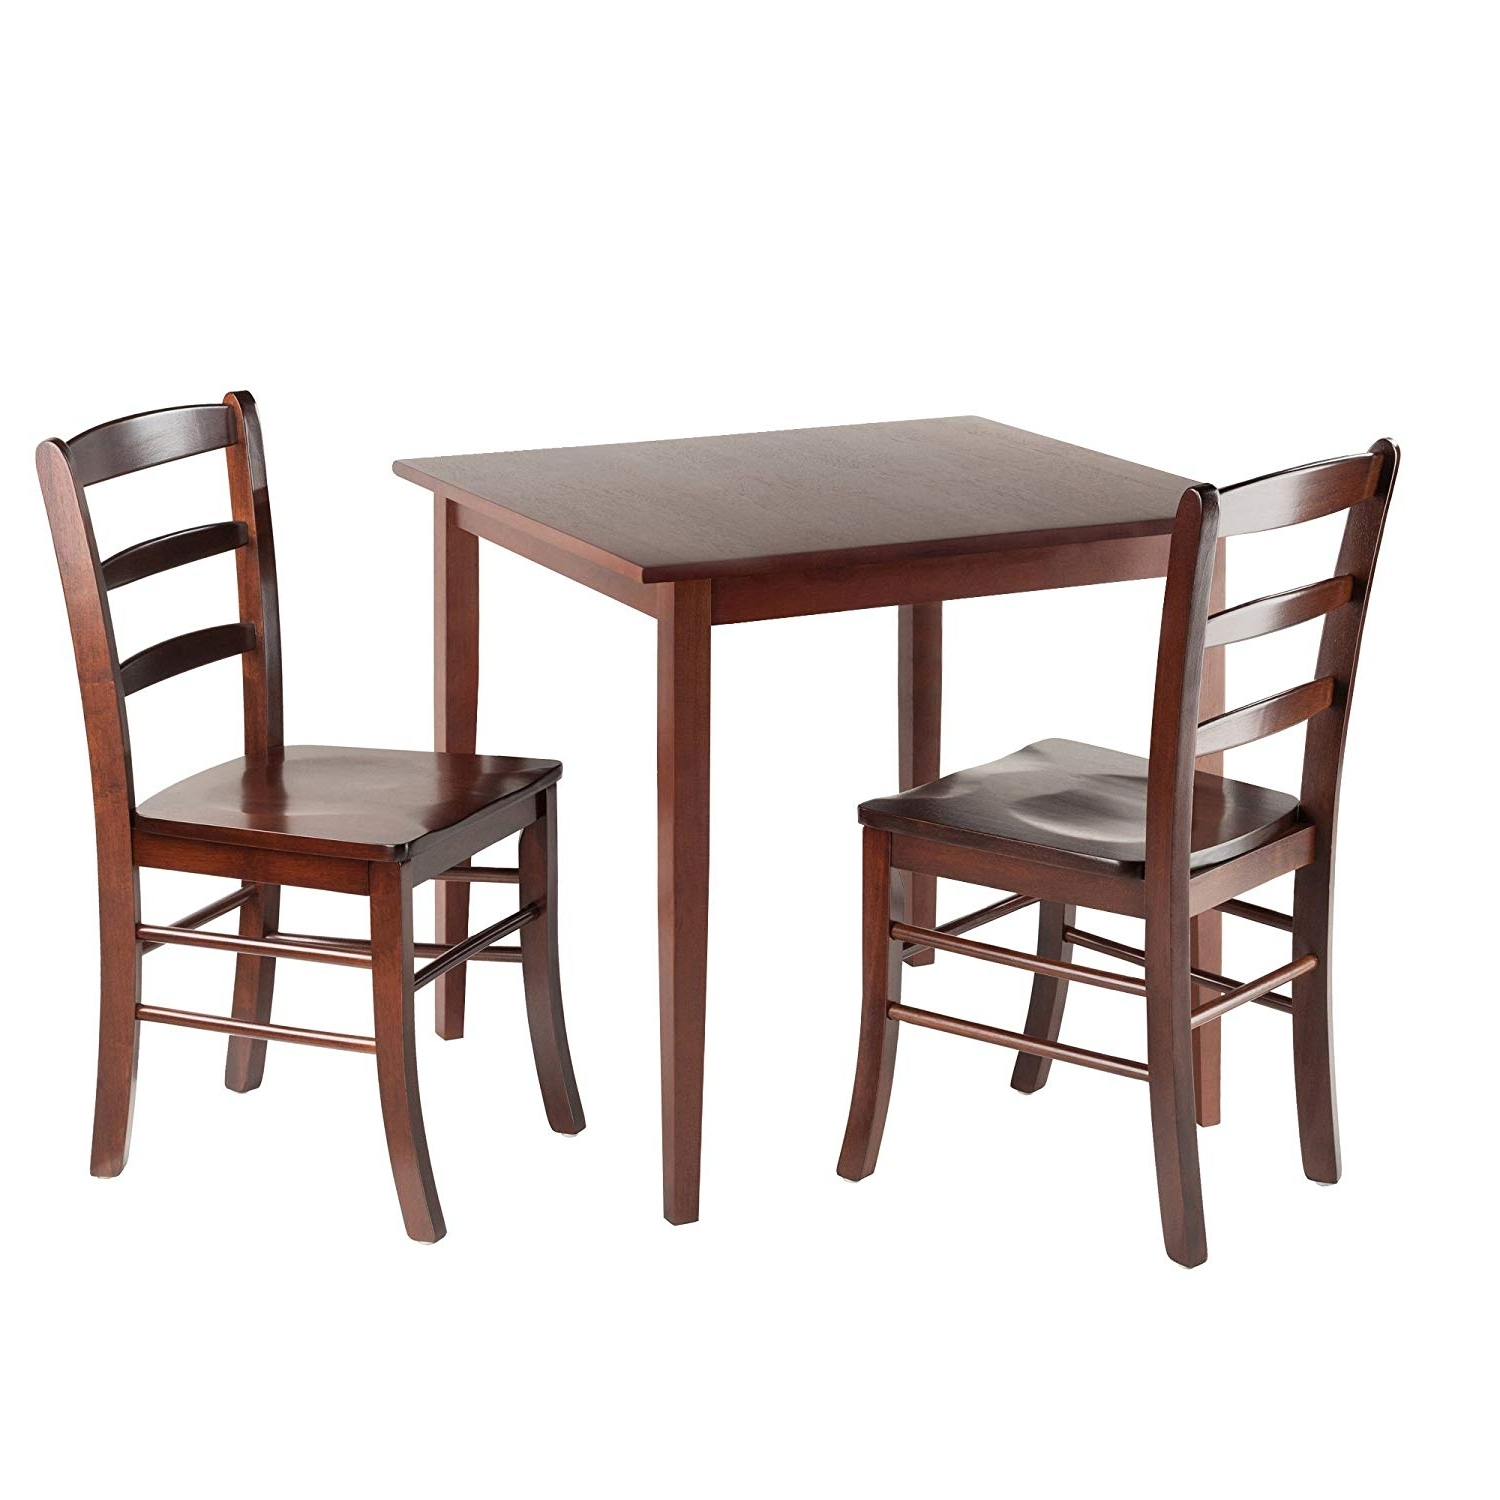 Favorite Light Oak Dining Tables And Chairs Inside Amazon – Winsome Groveland 3 Piece Wood Dining Set, Light Oak (View 3 of 25)